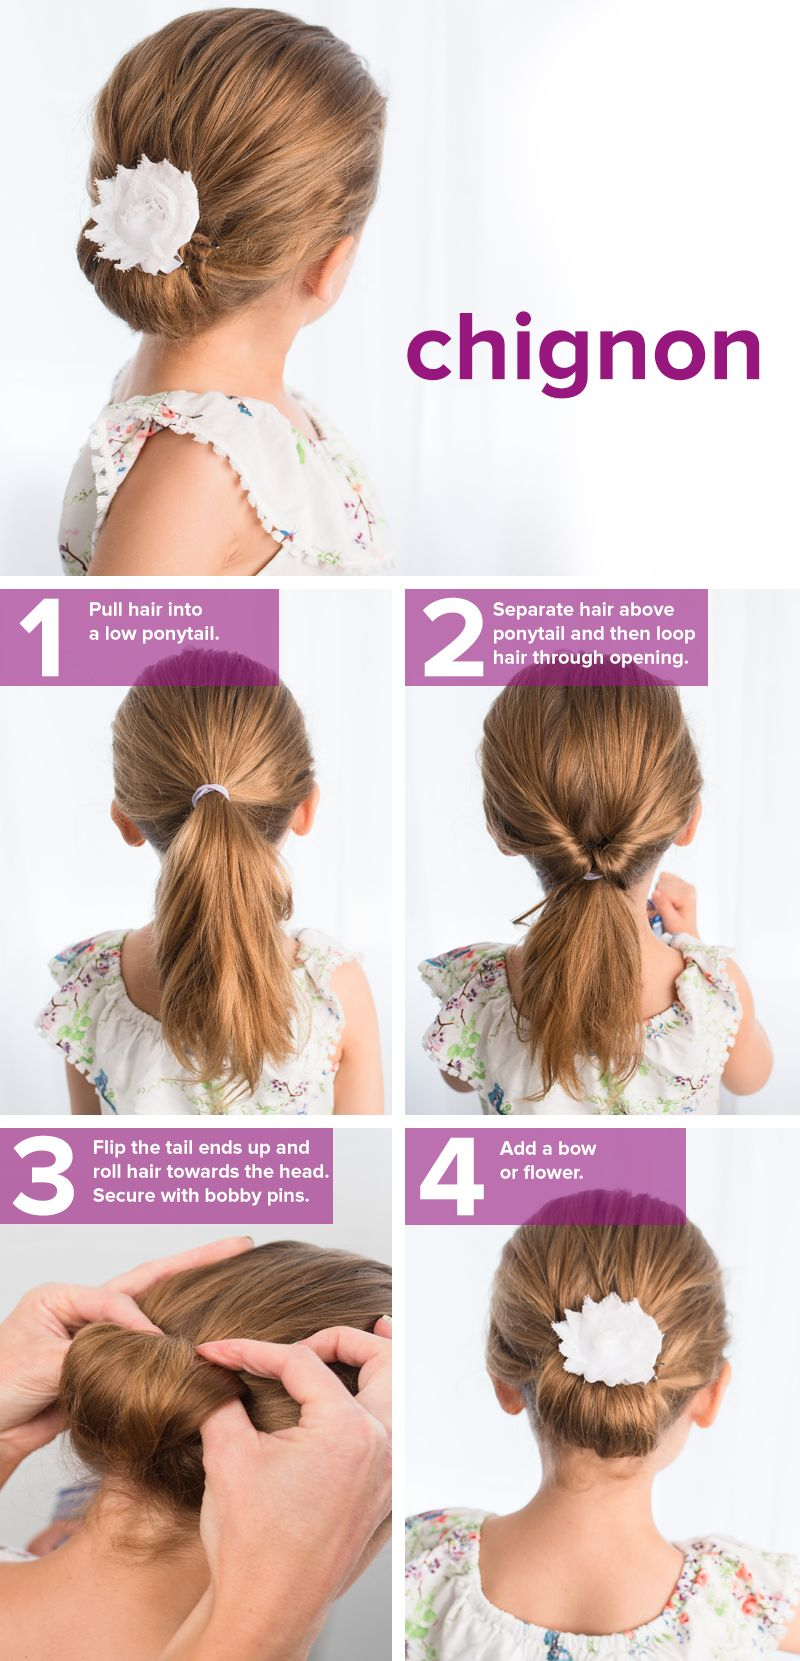 Quick Hairstyles For Long Hair Inspiration 5 Fast Easy Cute Hairstyles For Girls  Pinterest  Chignon Hair